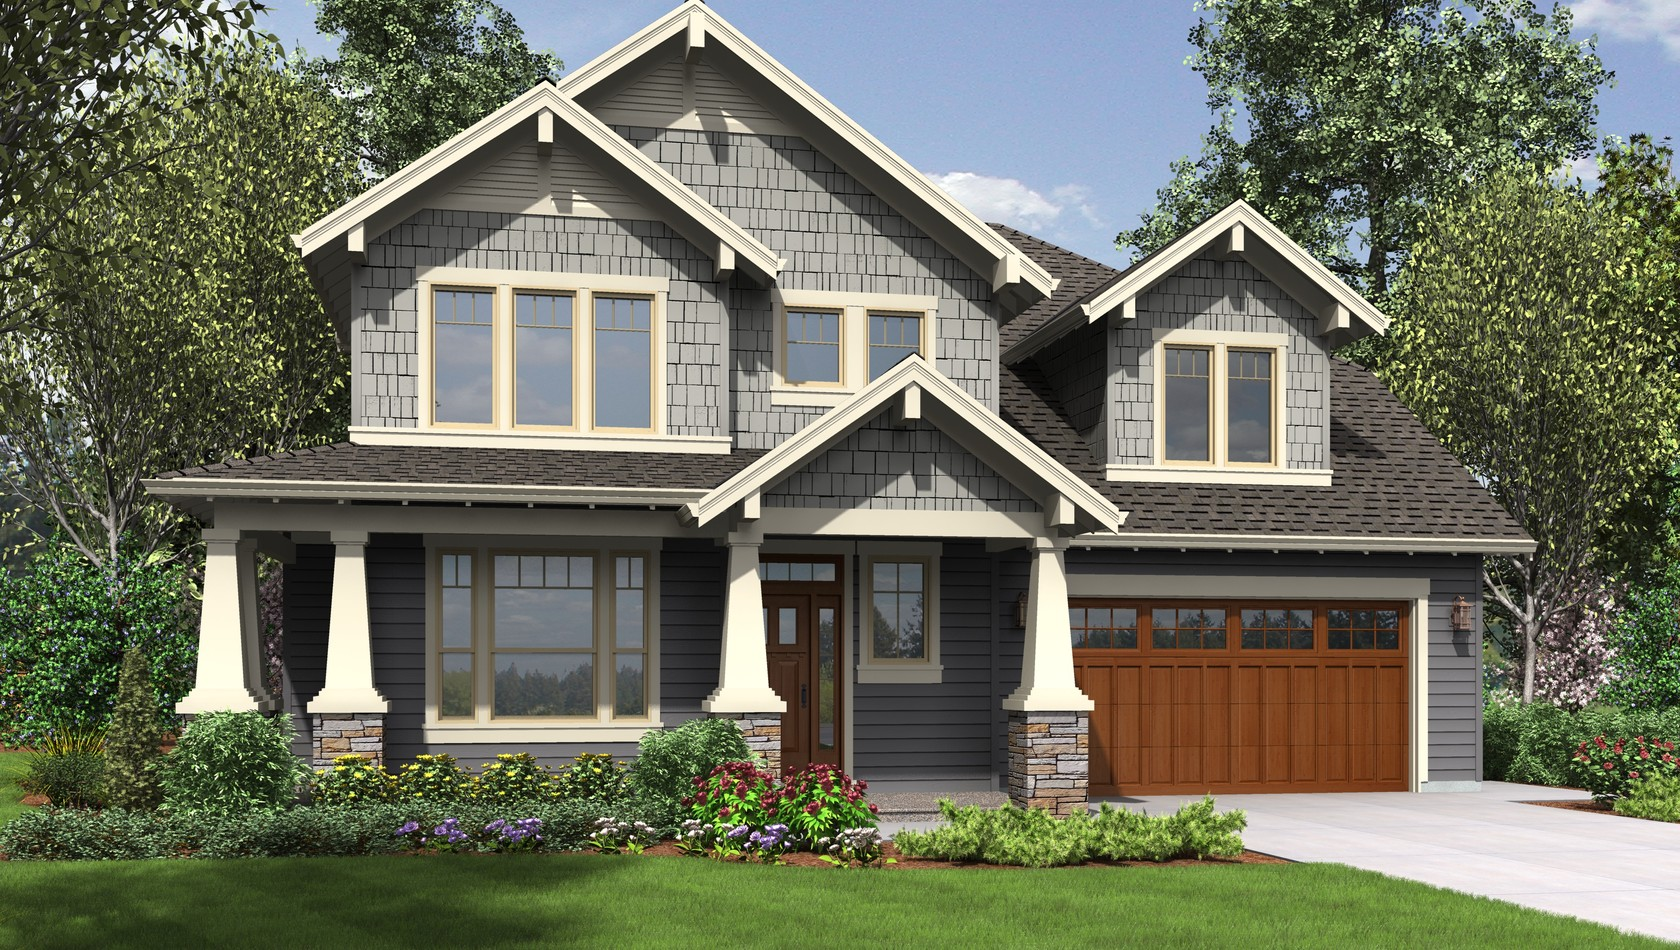 Main image for house plan 22199: The Hood River